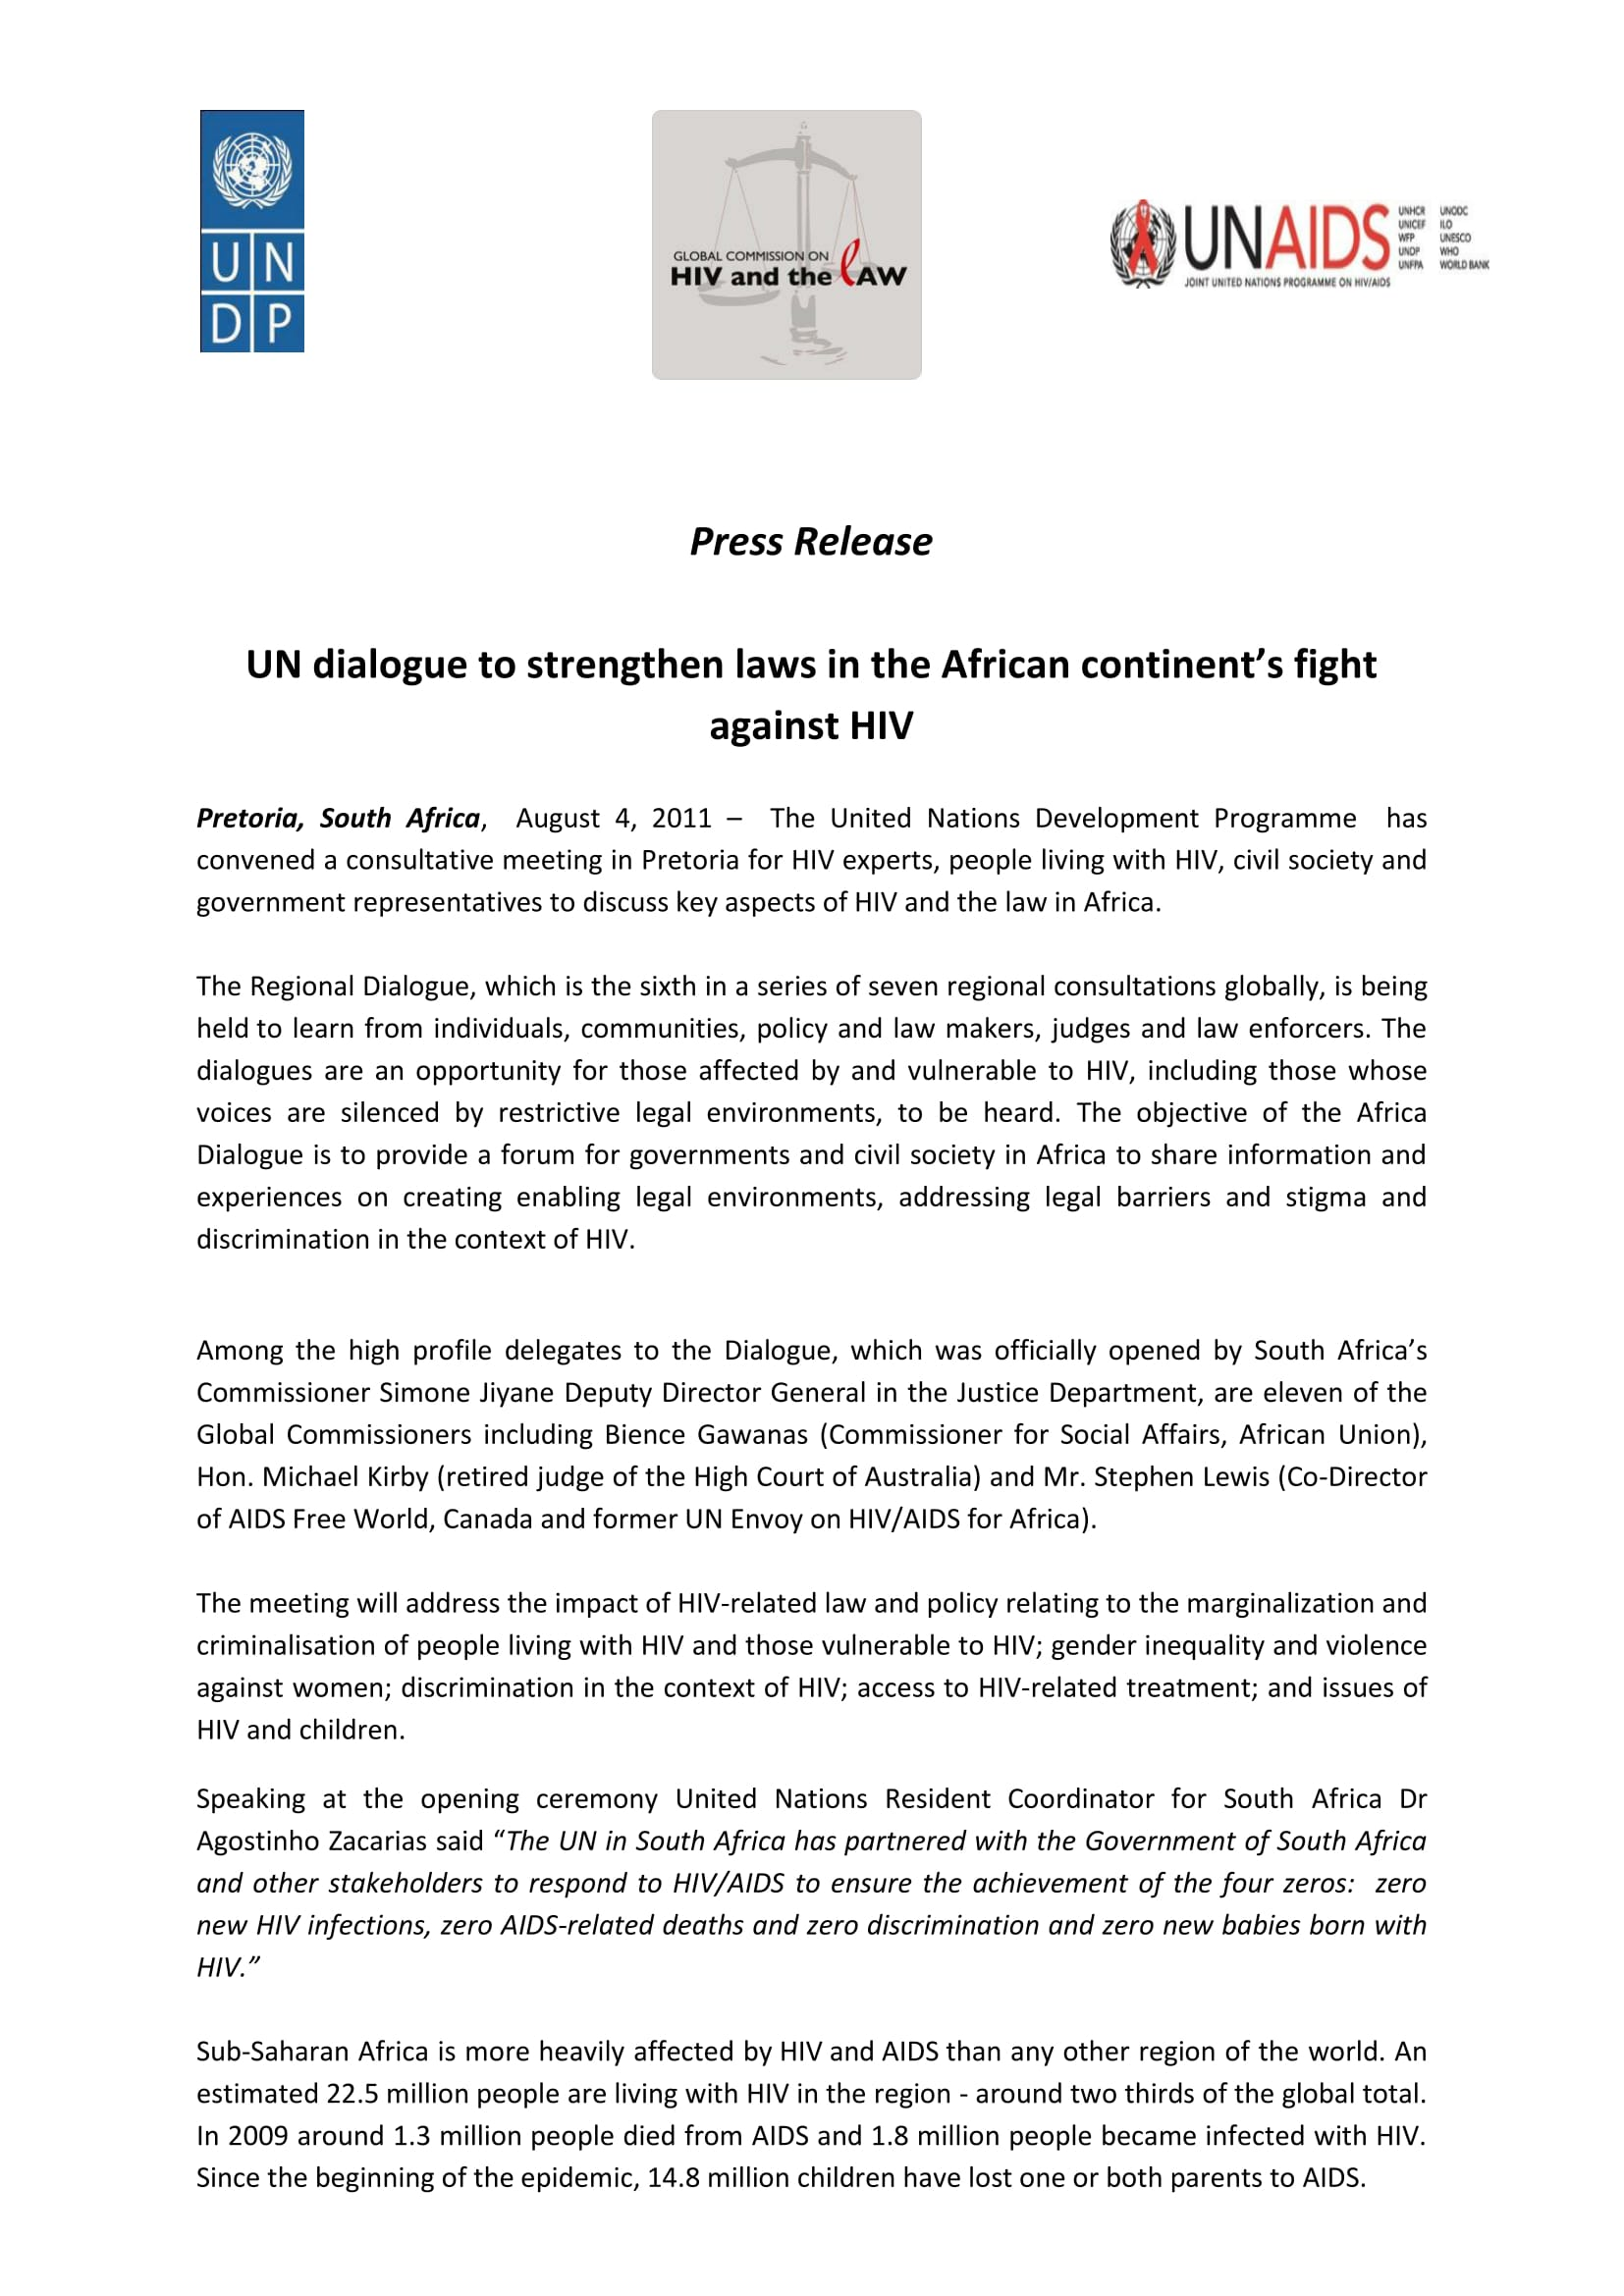 Press Release: UN dialogue to strengthen laws in the African continent's fight against HIV